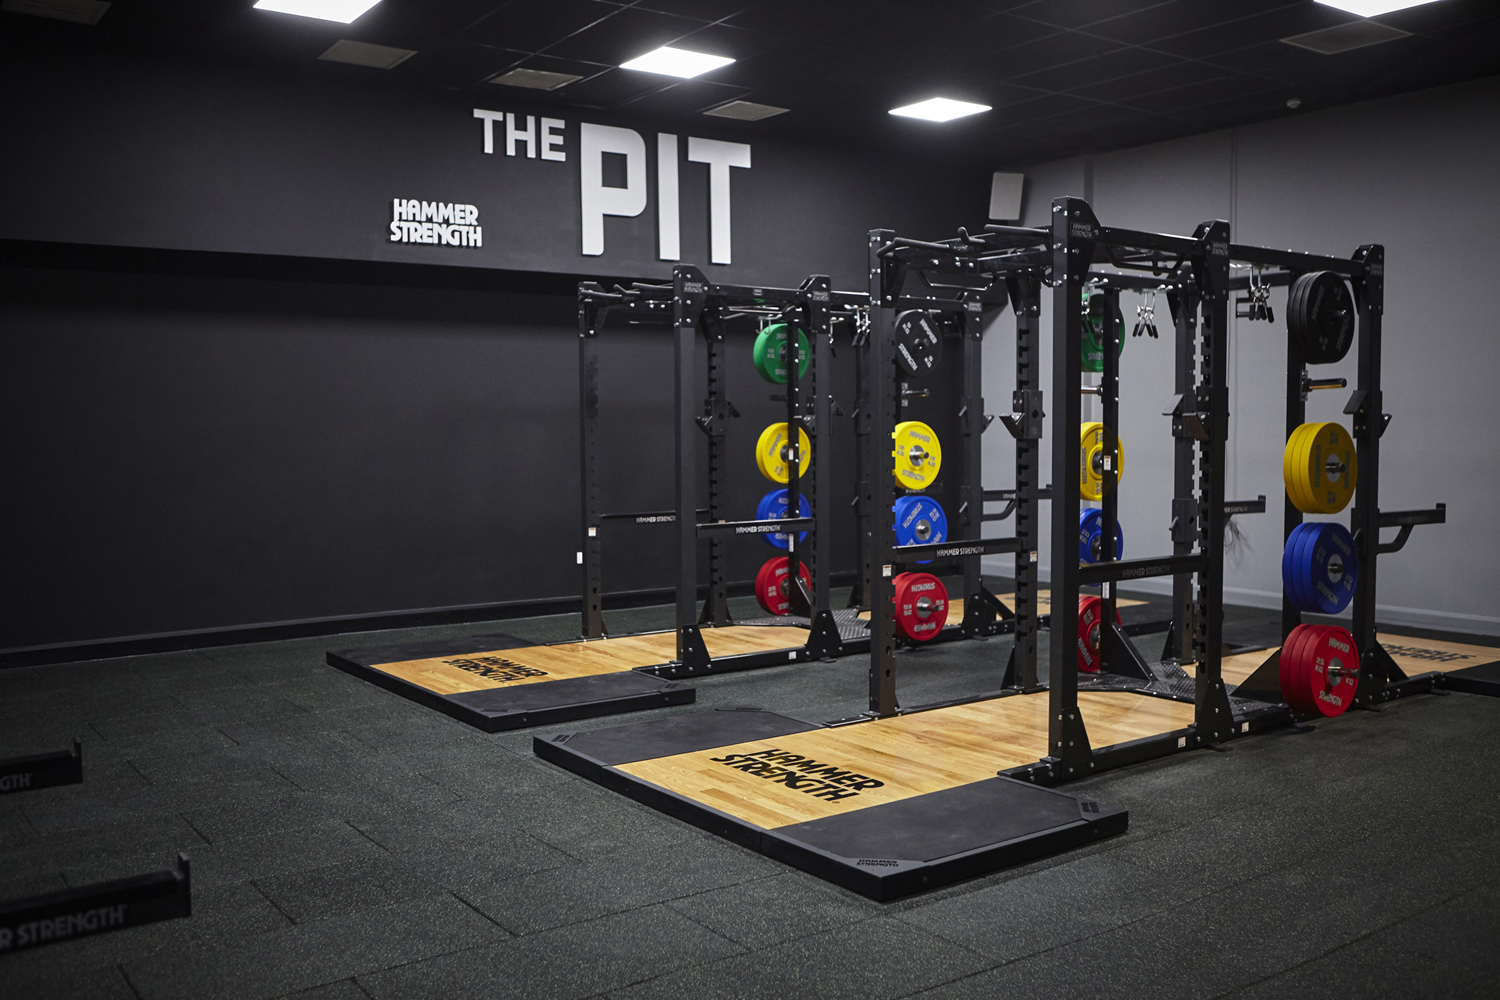 Cardiff Bay - Best New Gym From Just £17 99 - Simply Gym